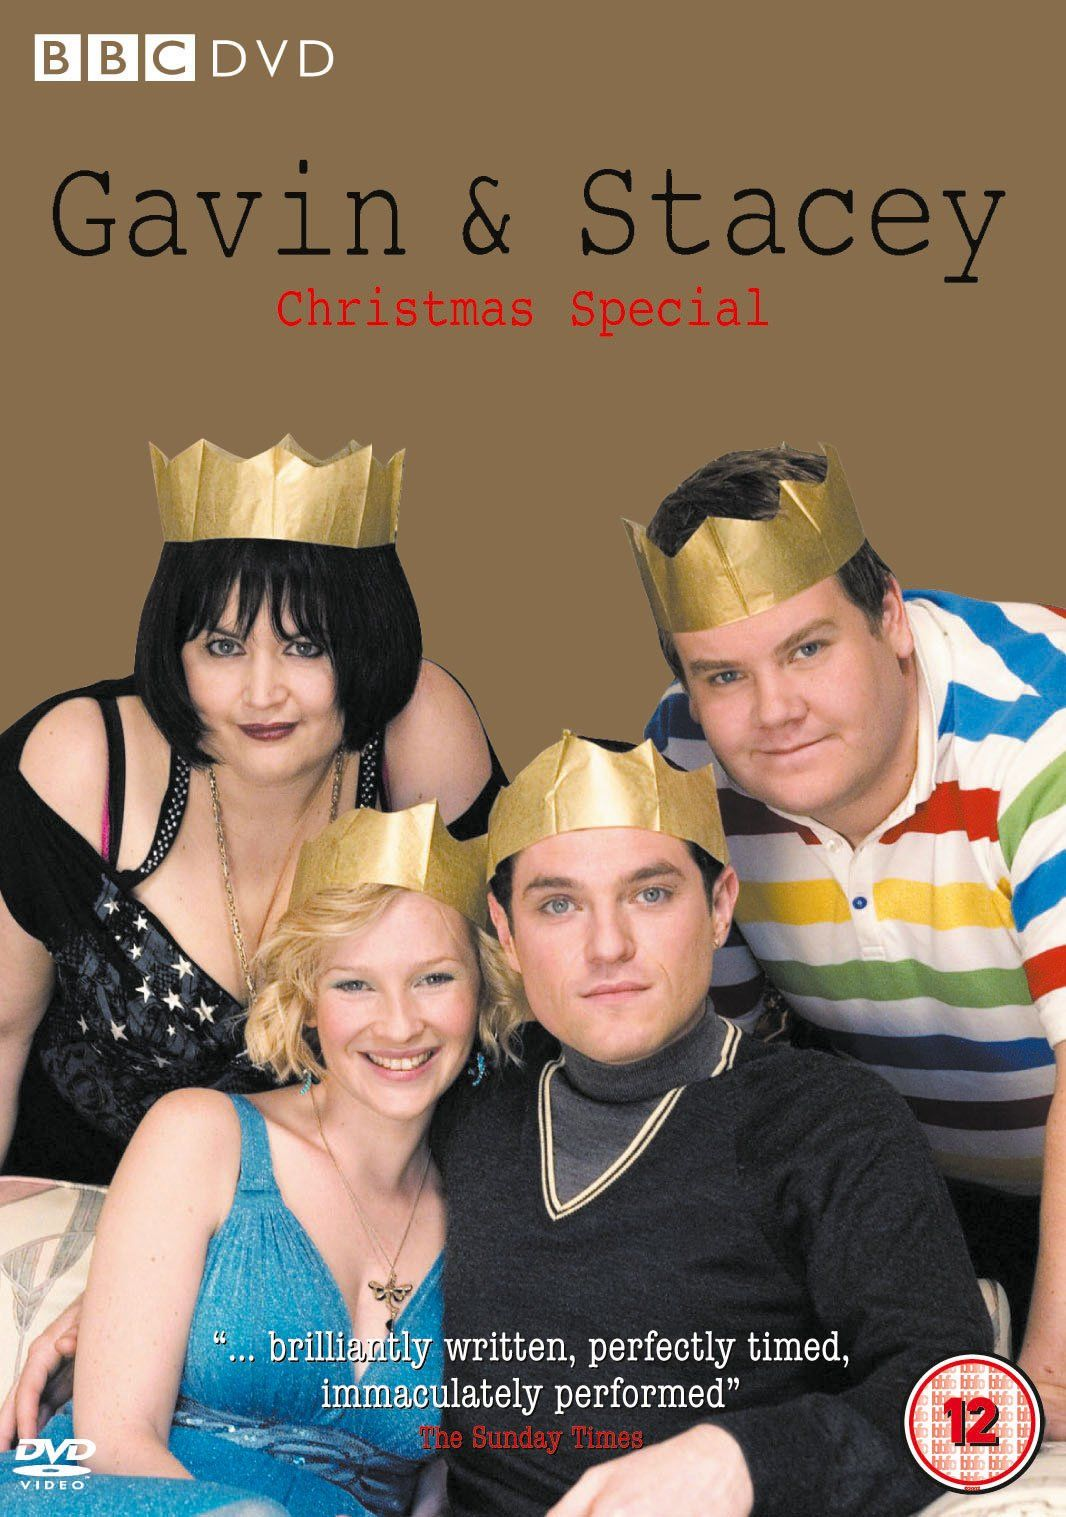 Gavin & Stacey Christmas Special Ruth Jones, James